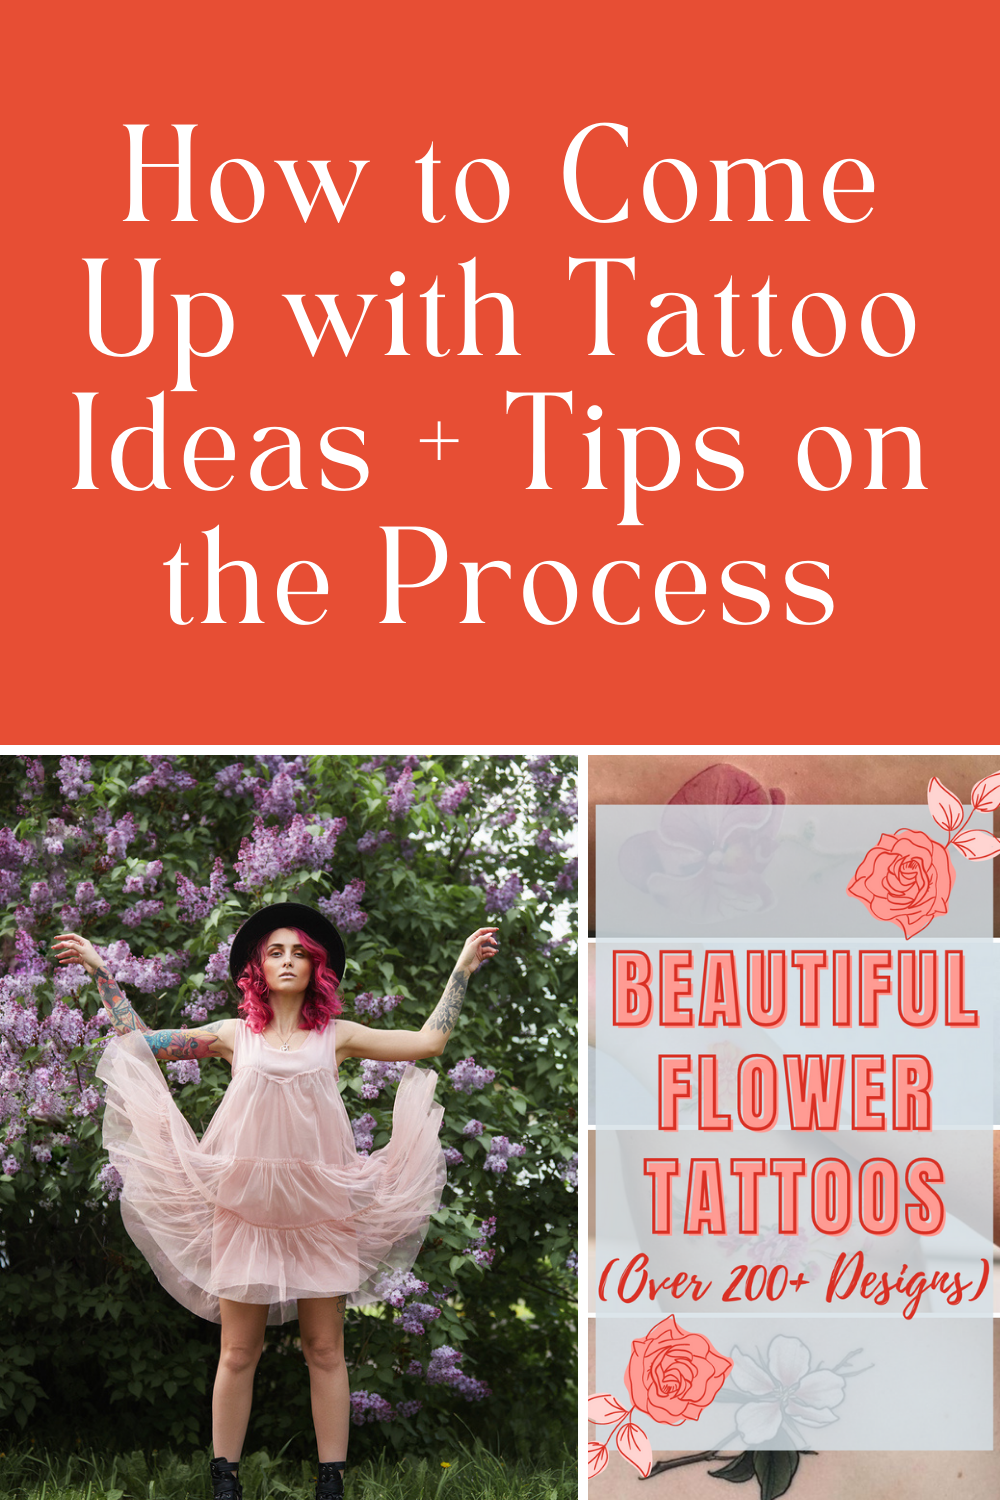 How to come up with tattoo ideas